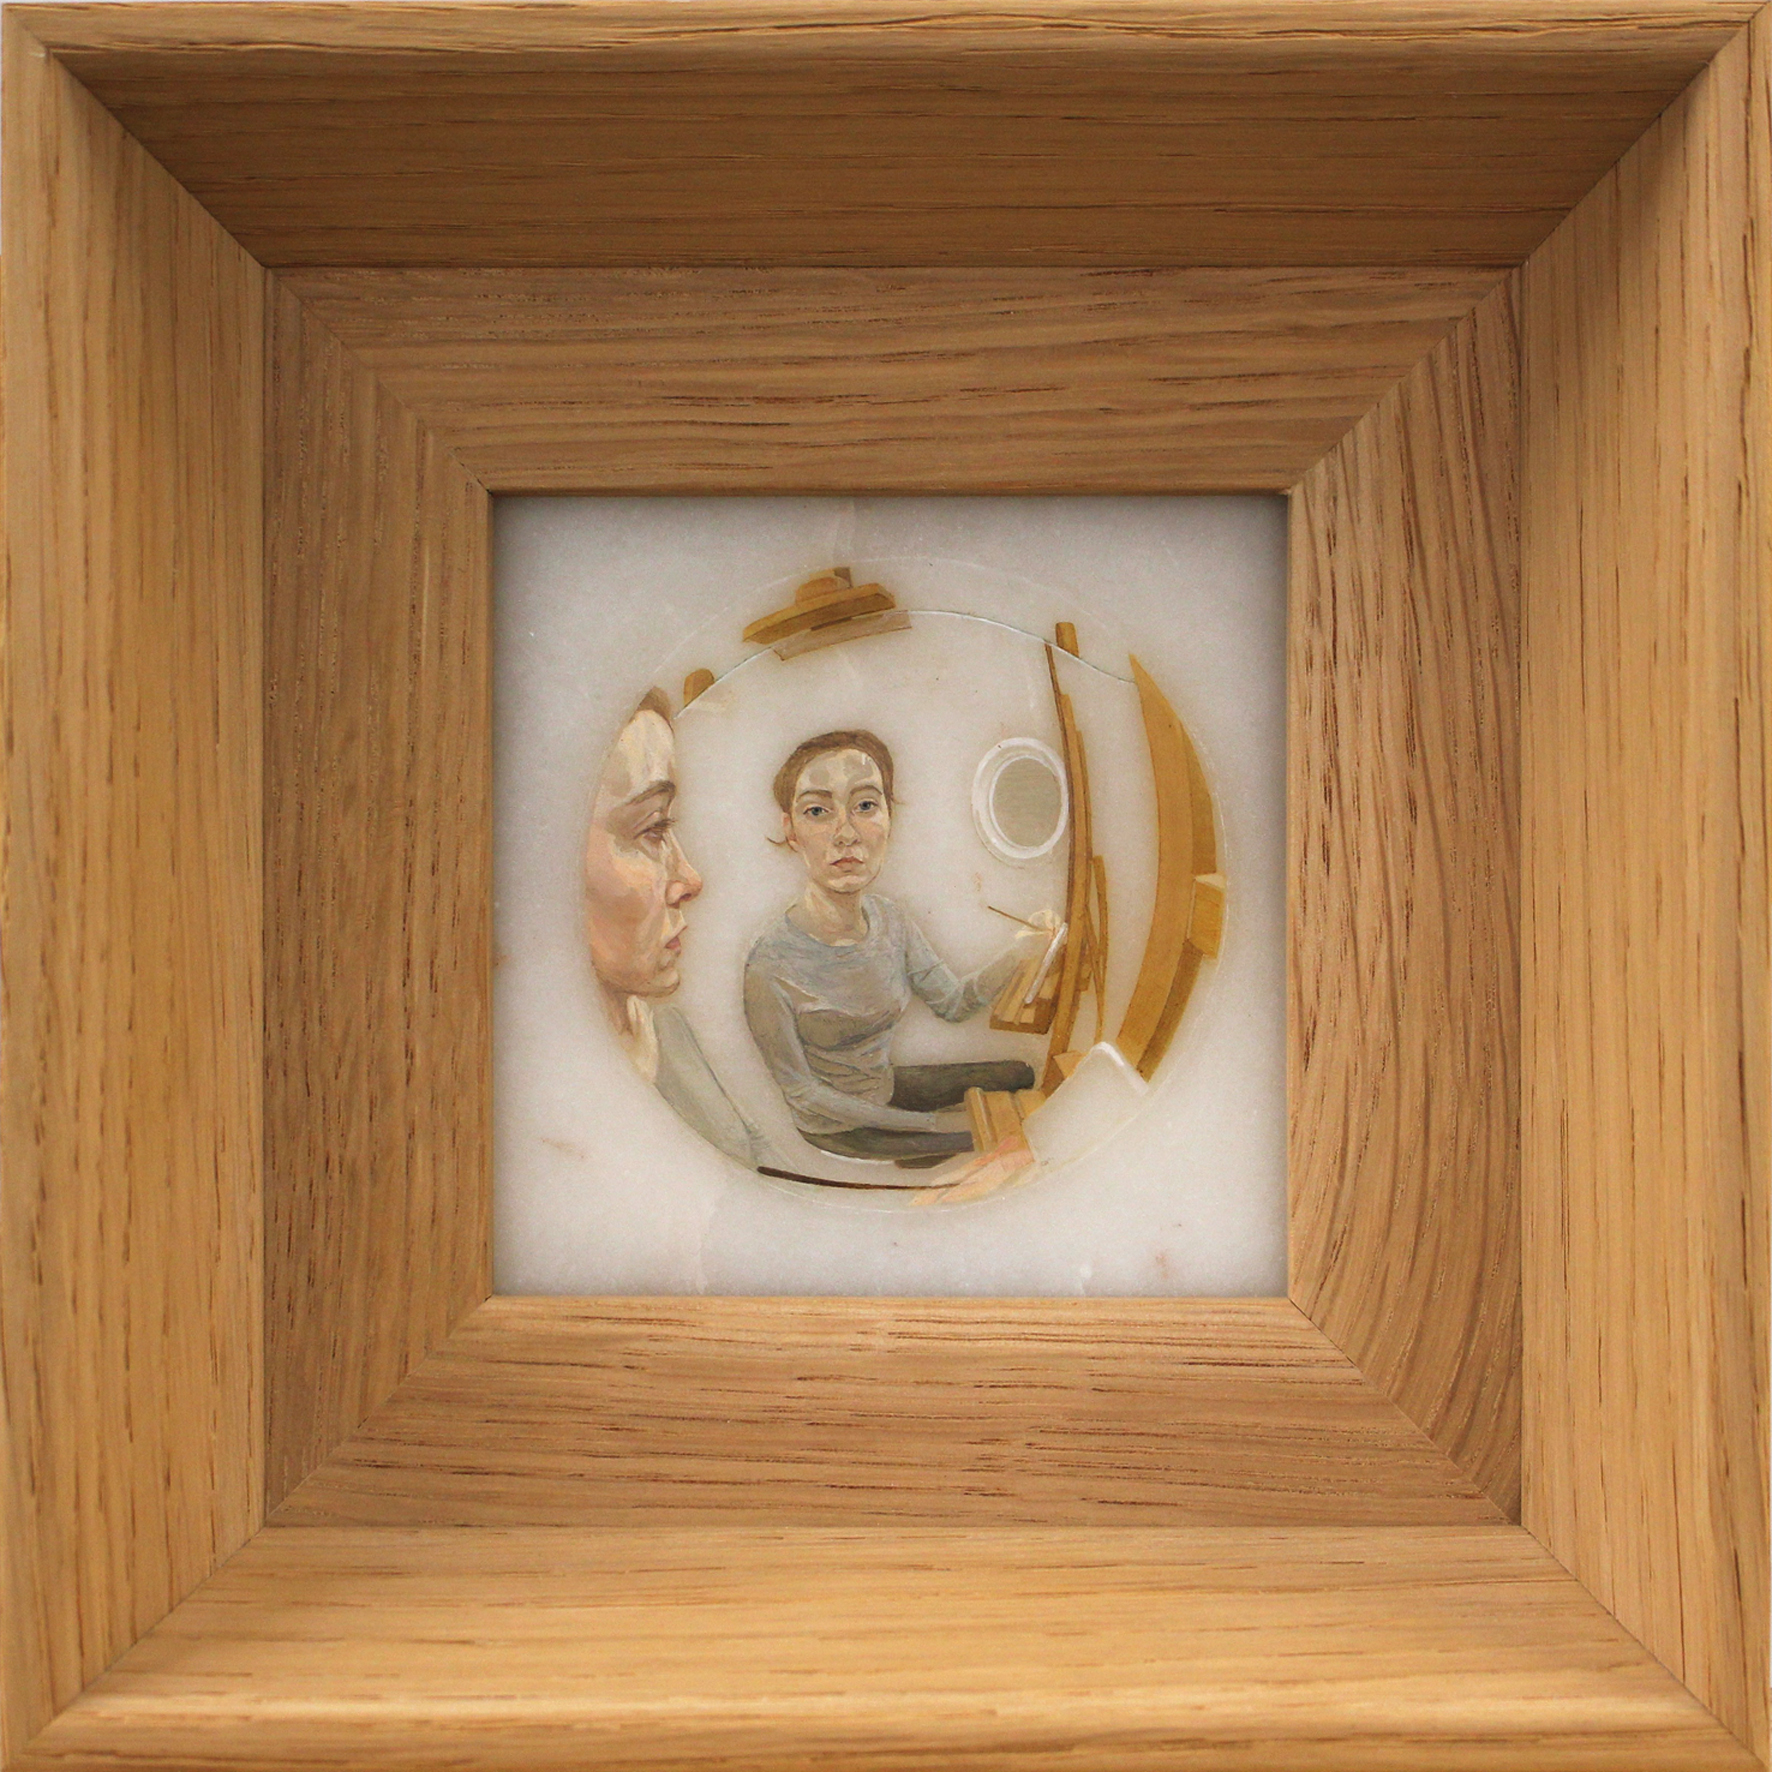 Doppelgänger, (2019) oil on marble, 10 x 10cm (unframed)